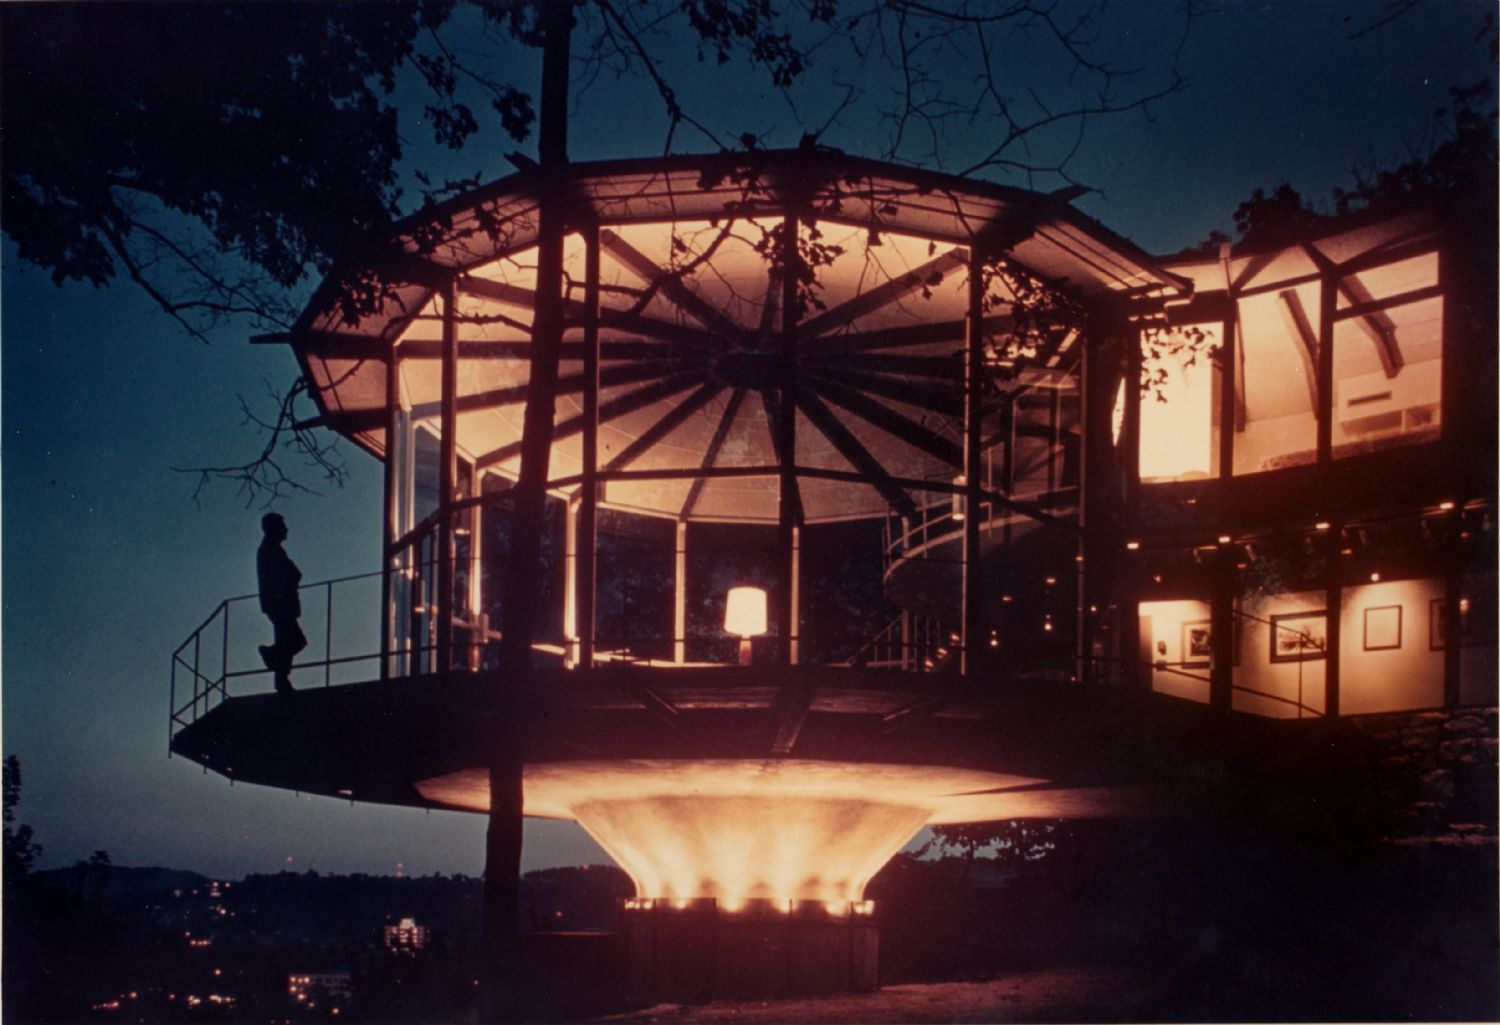 A nighttime view of one circular lounge.